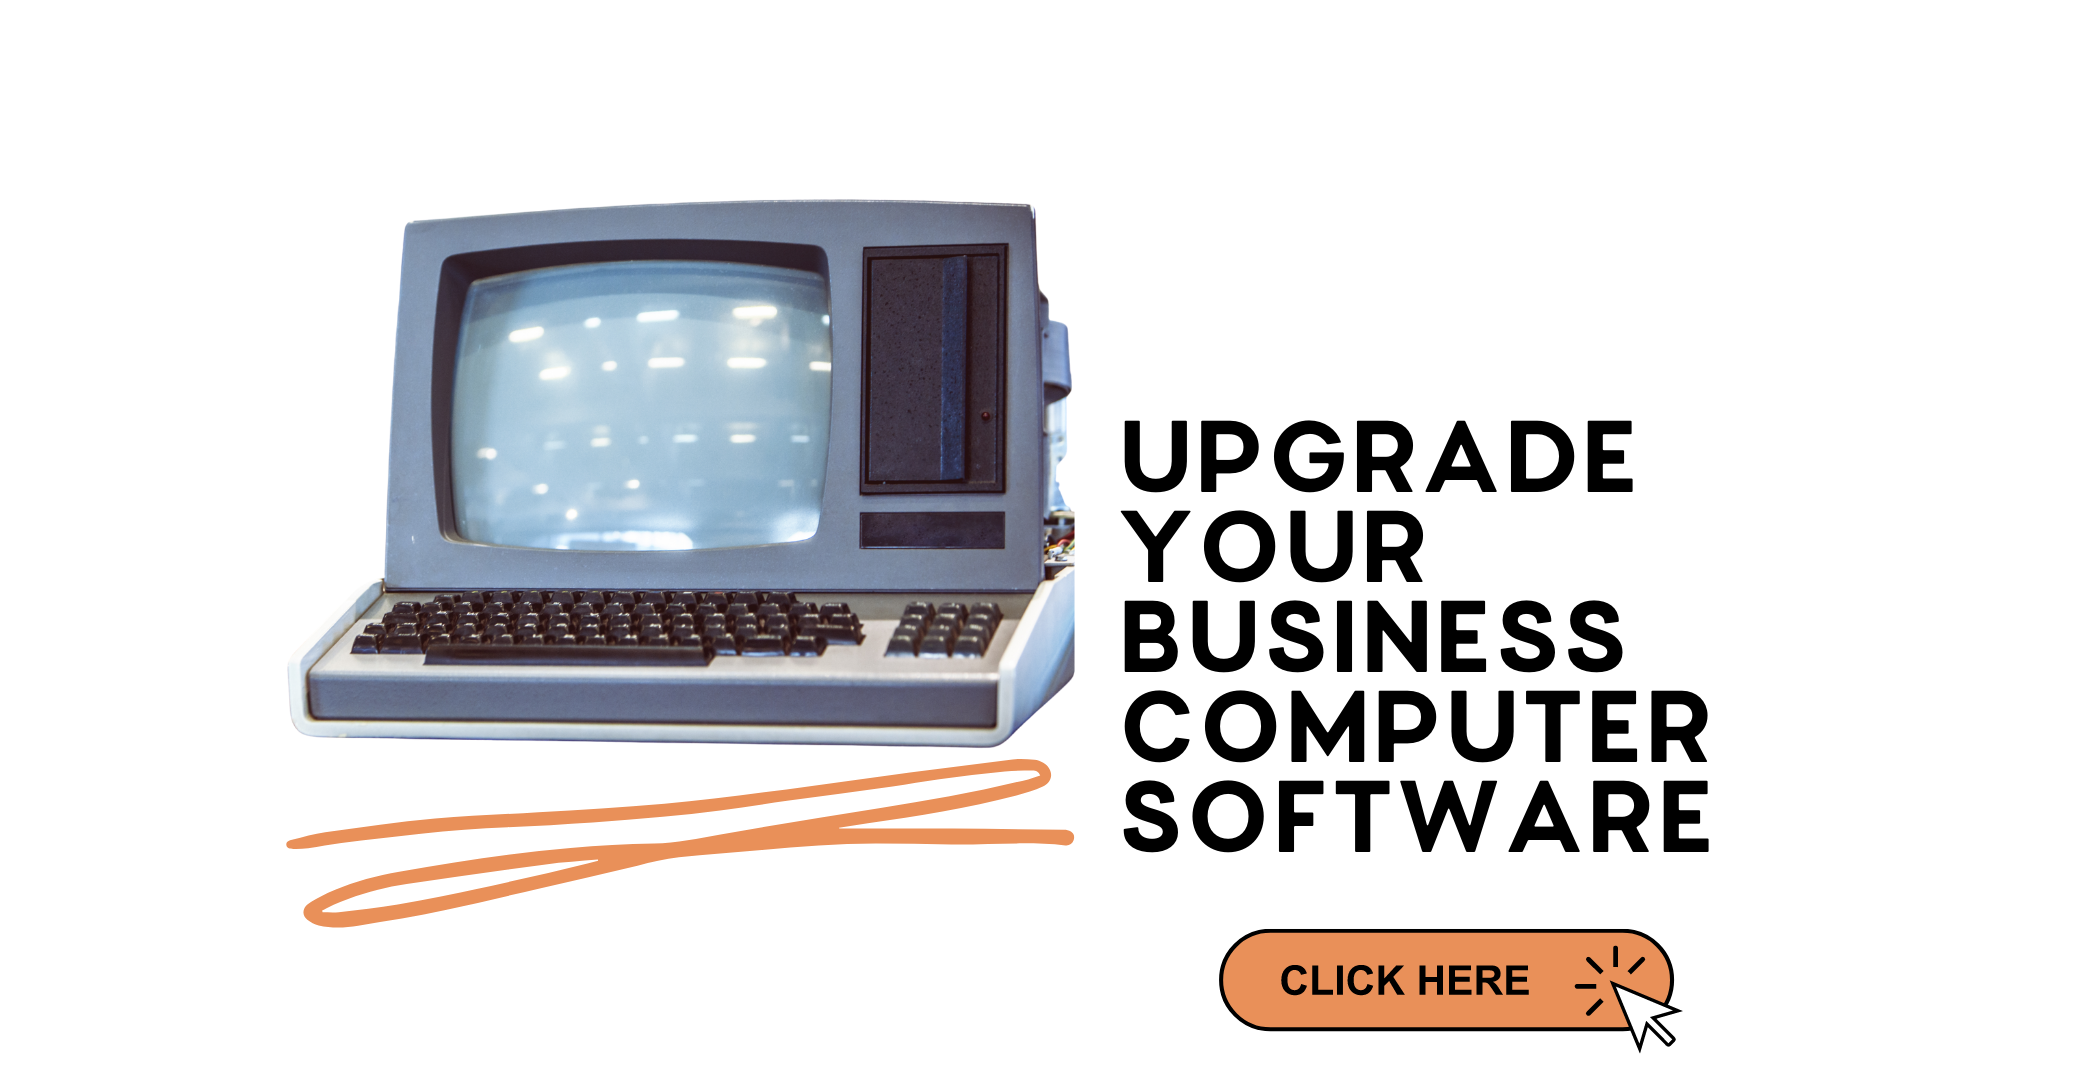 Upgrade Your Business Computer Software